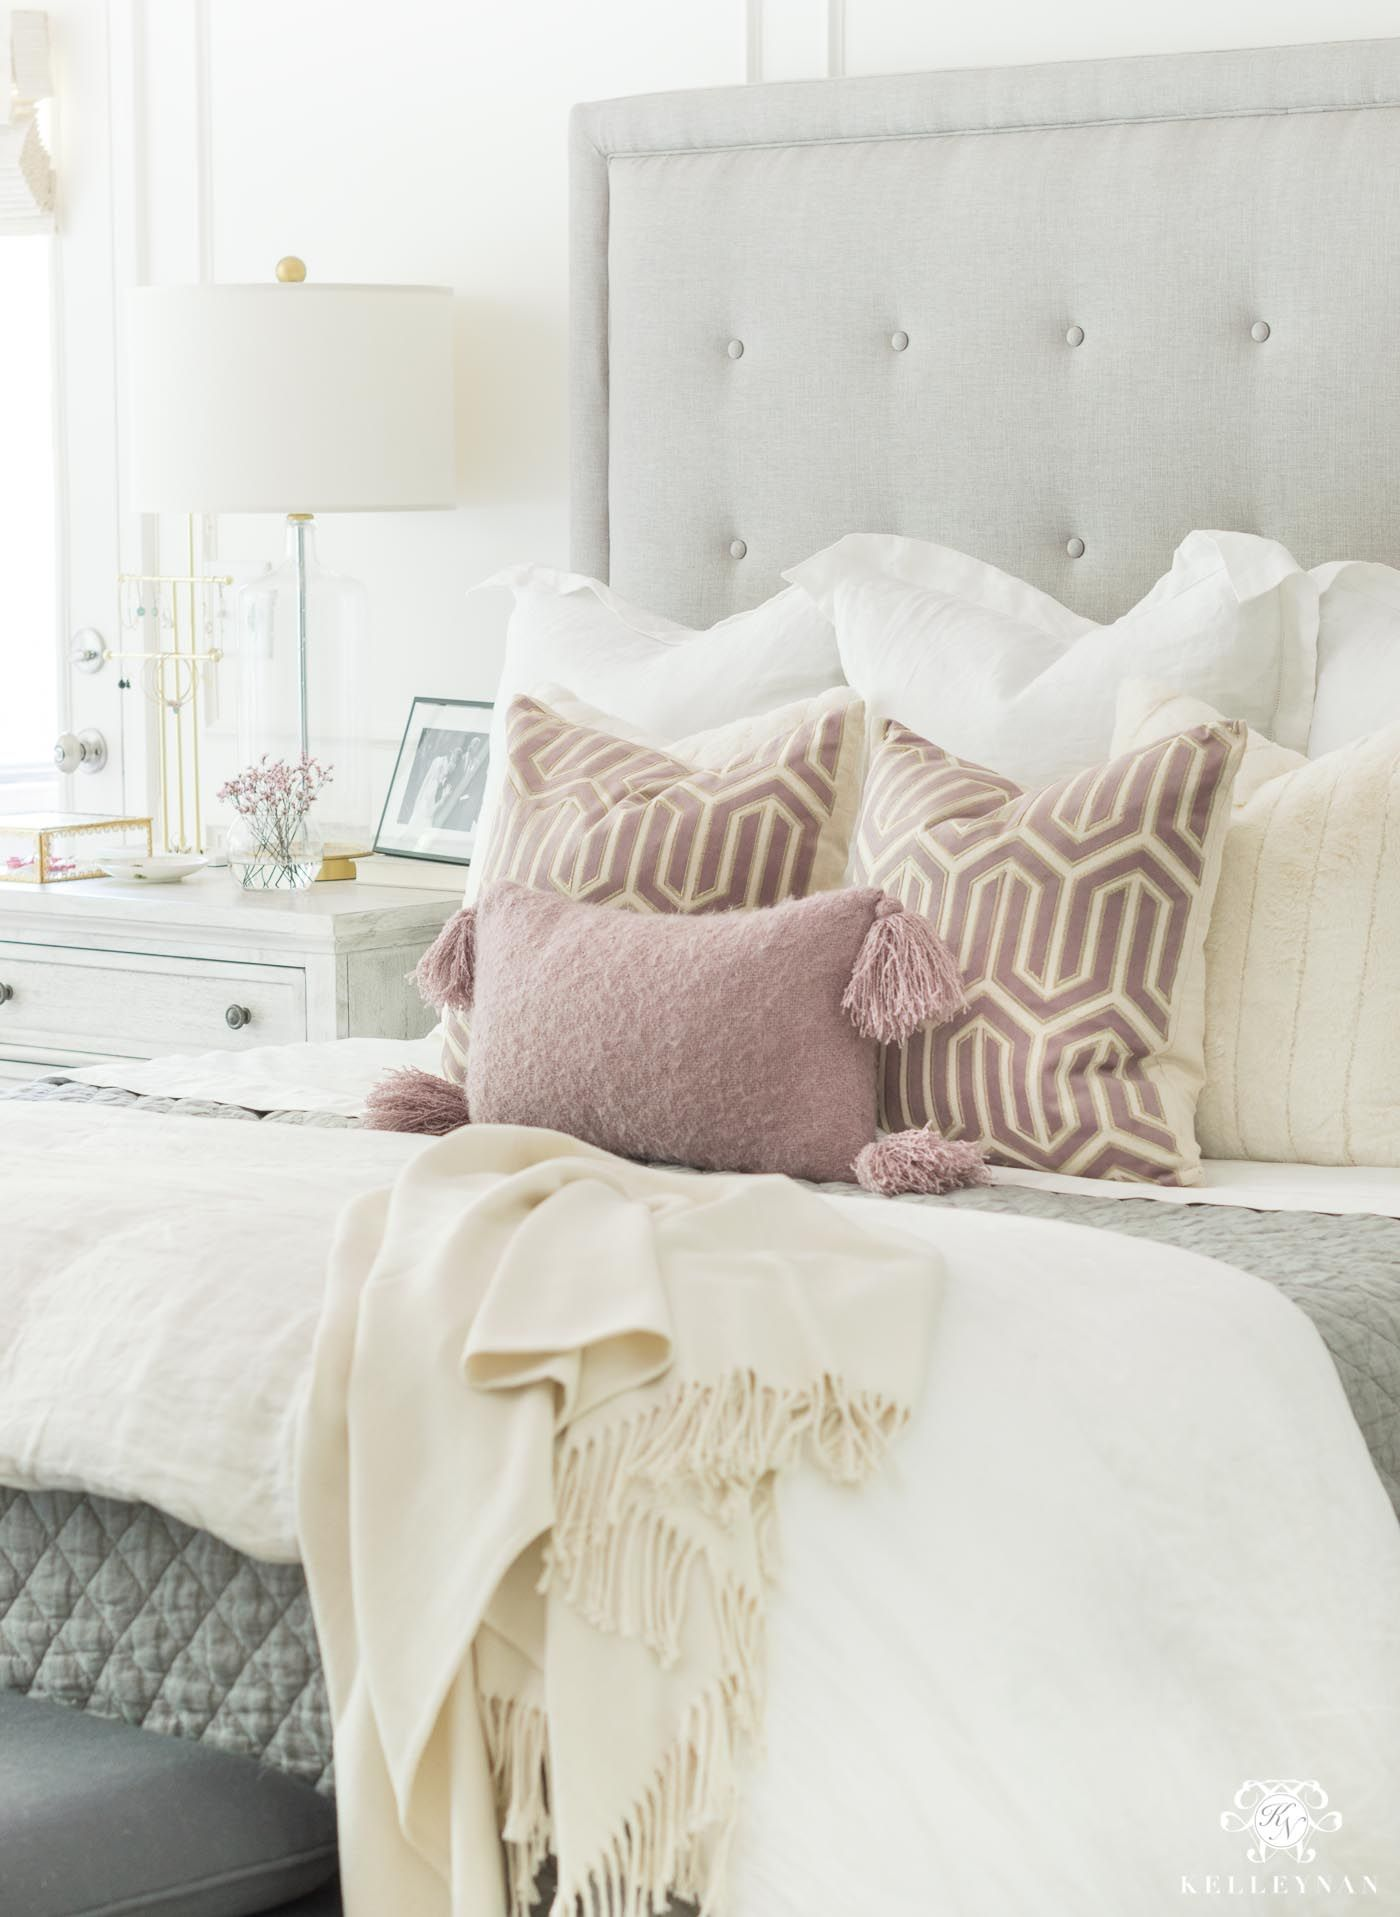 How To Mix And Match Bedroom Furniture Finishes Bedroom Decor